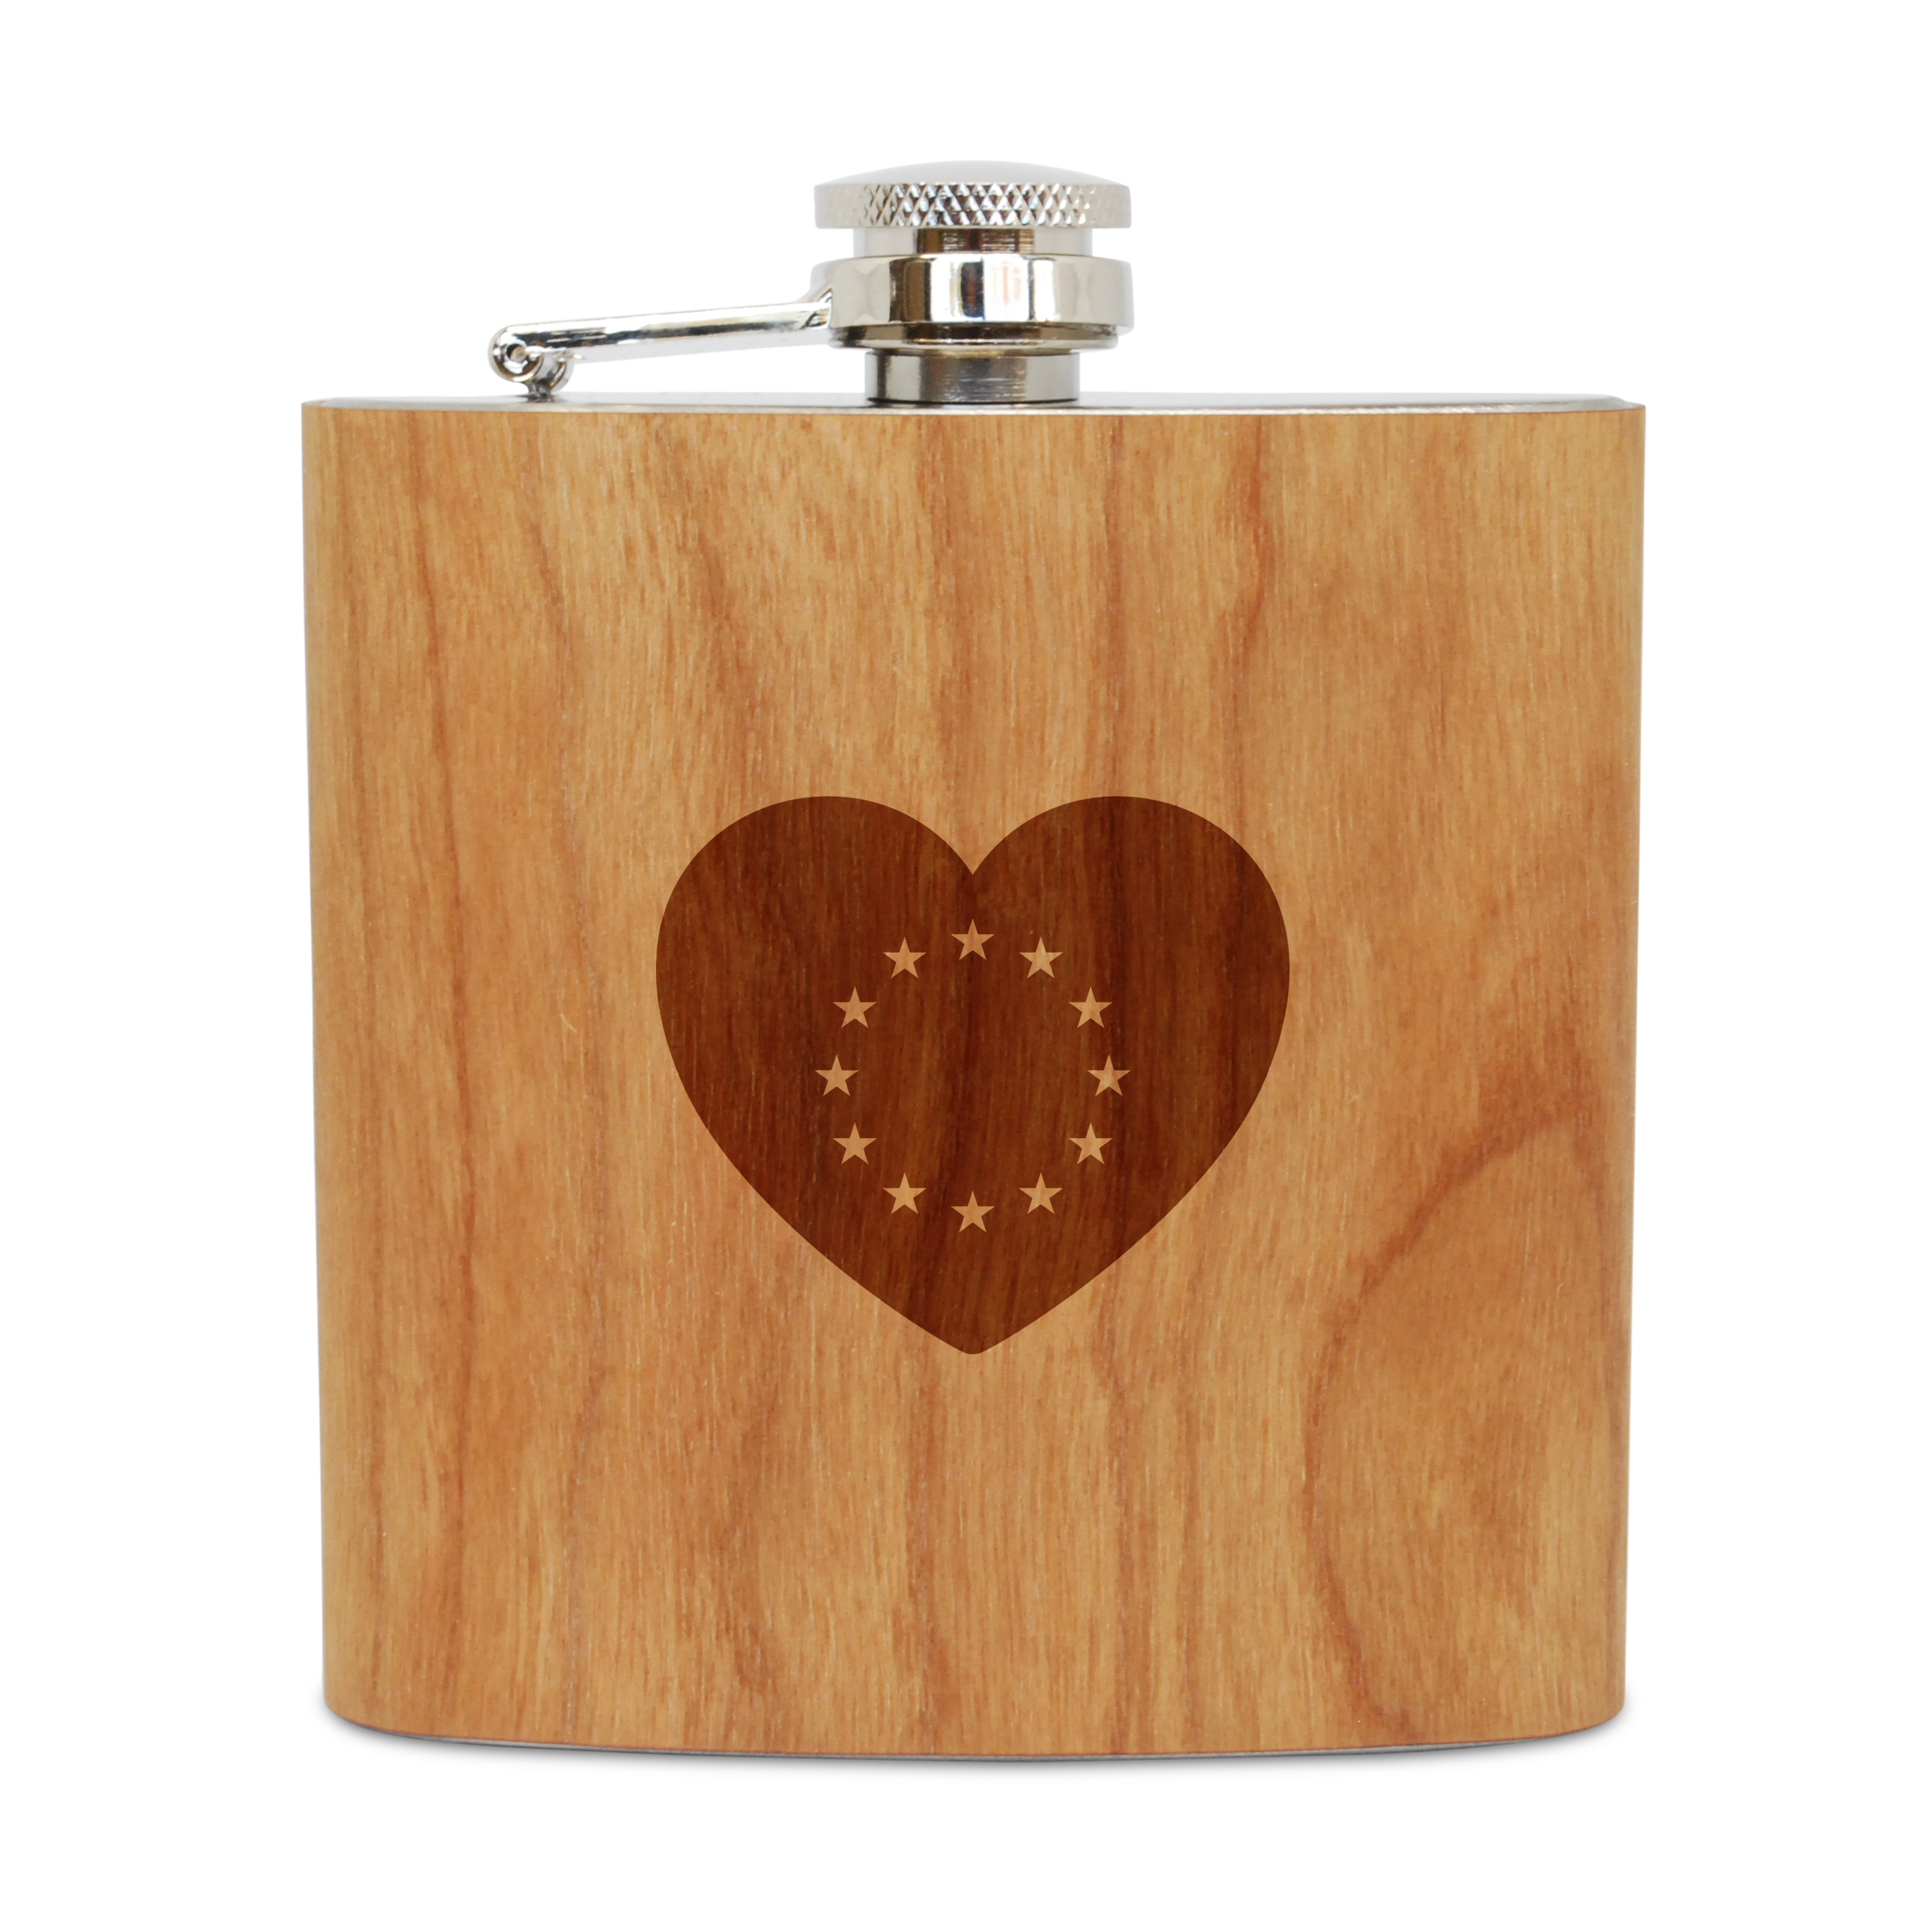 European 6 Oz Wooden Flask (Cherry), Stainless Steel Body, Handmade In Usa